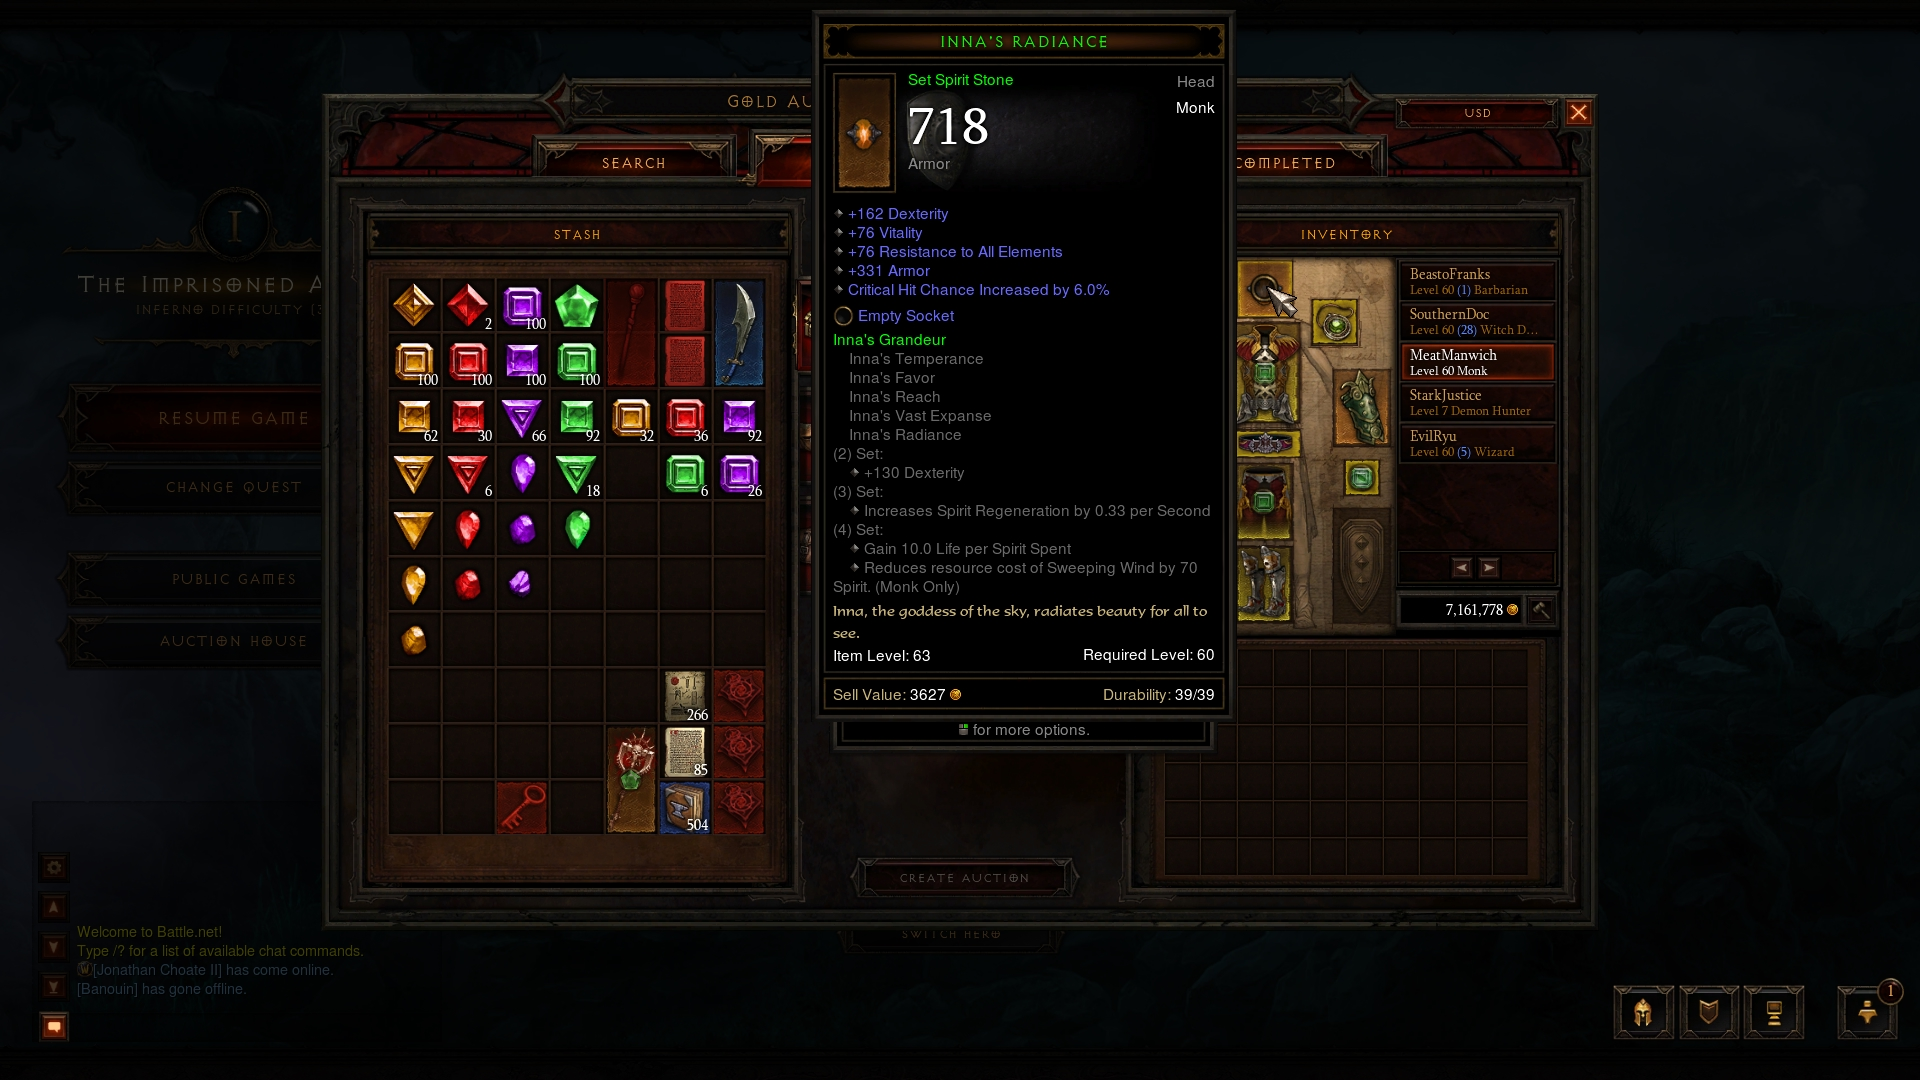 wetticus games dont peculiar know what think this just show post trading your diablo legendary